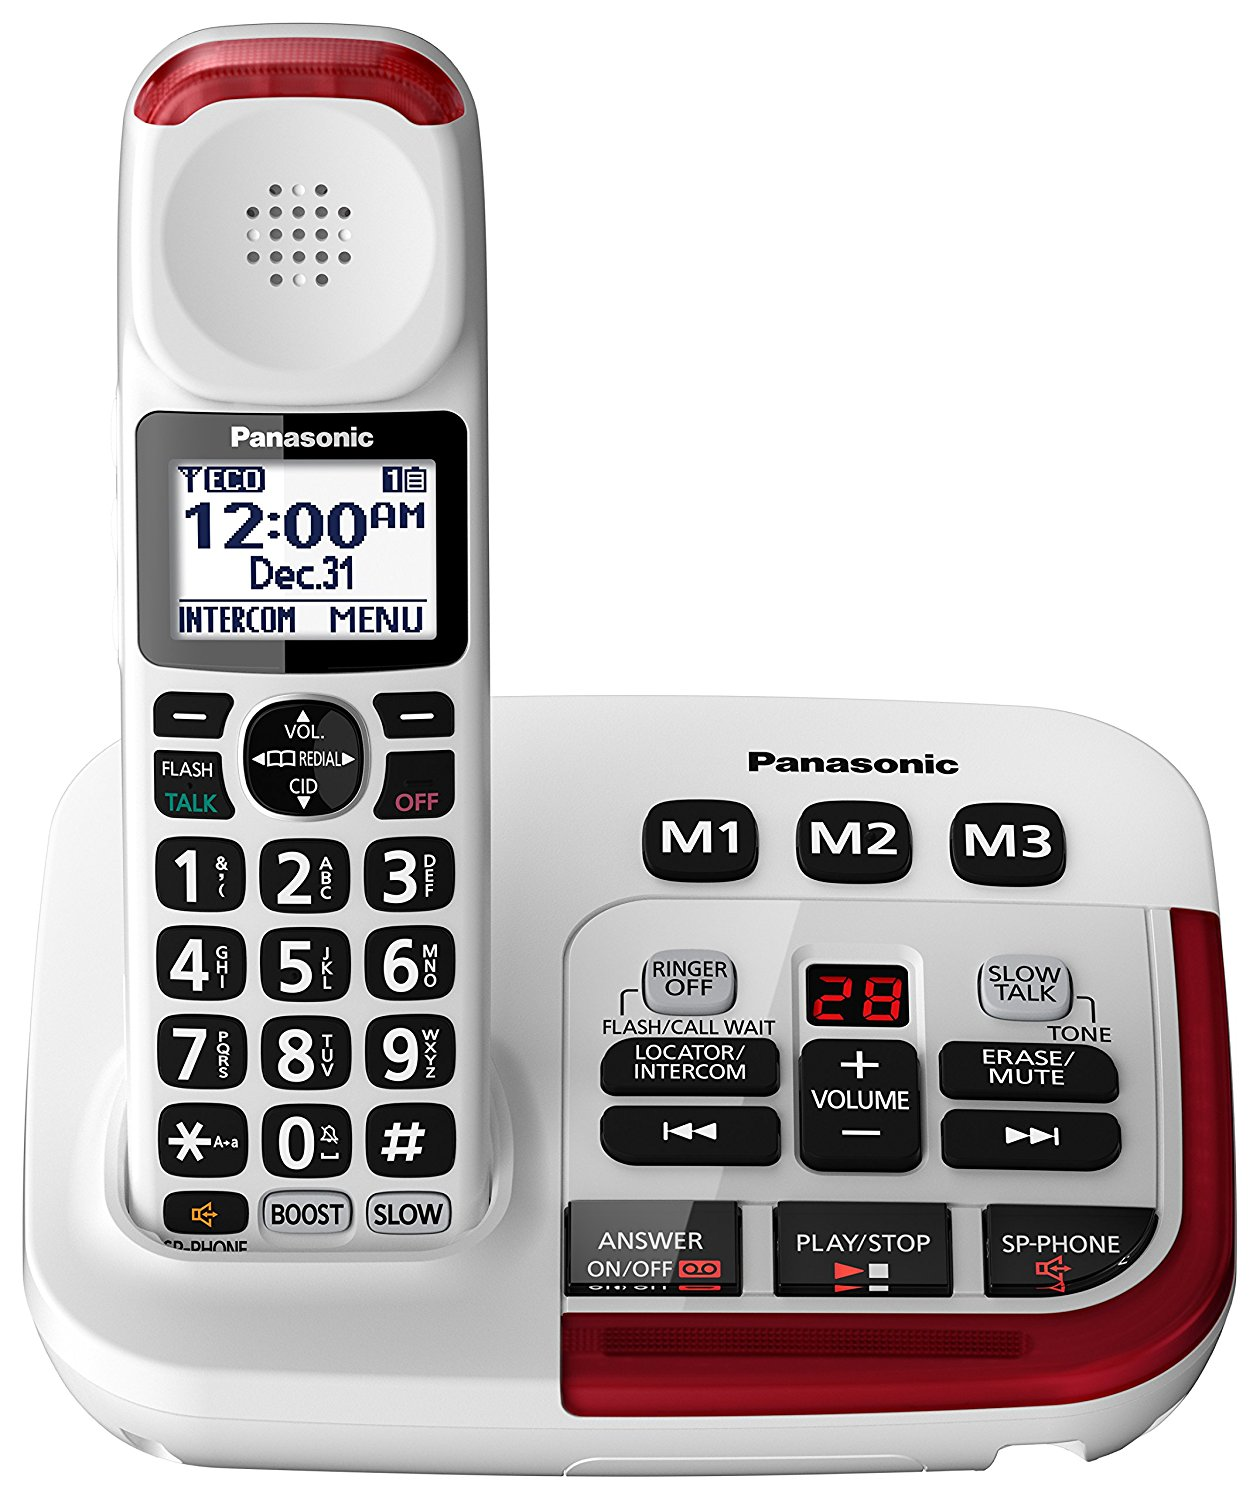 Panasonic Amplified Cordless Phone with Digital Answering Machine, 1 Handset, Up to 40 dB Volume